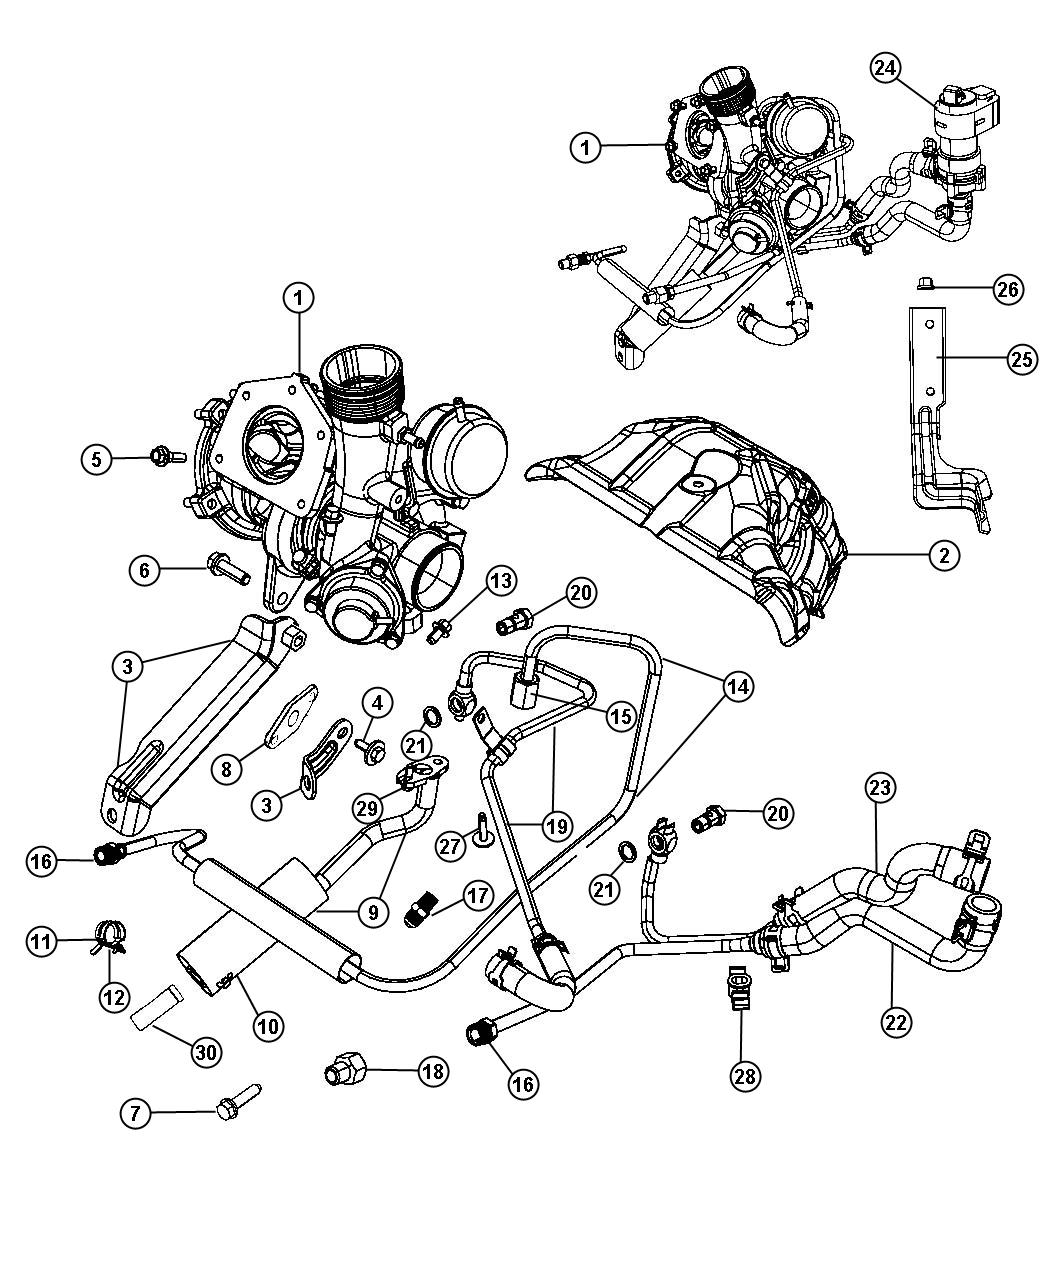 2008 Dodge Caliber Exterior Parts Diagram Wiring For Free 2012 Engine